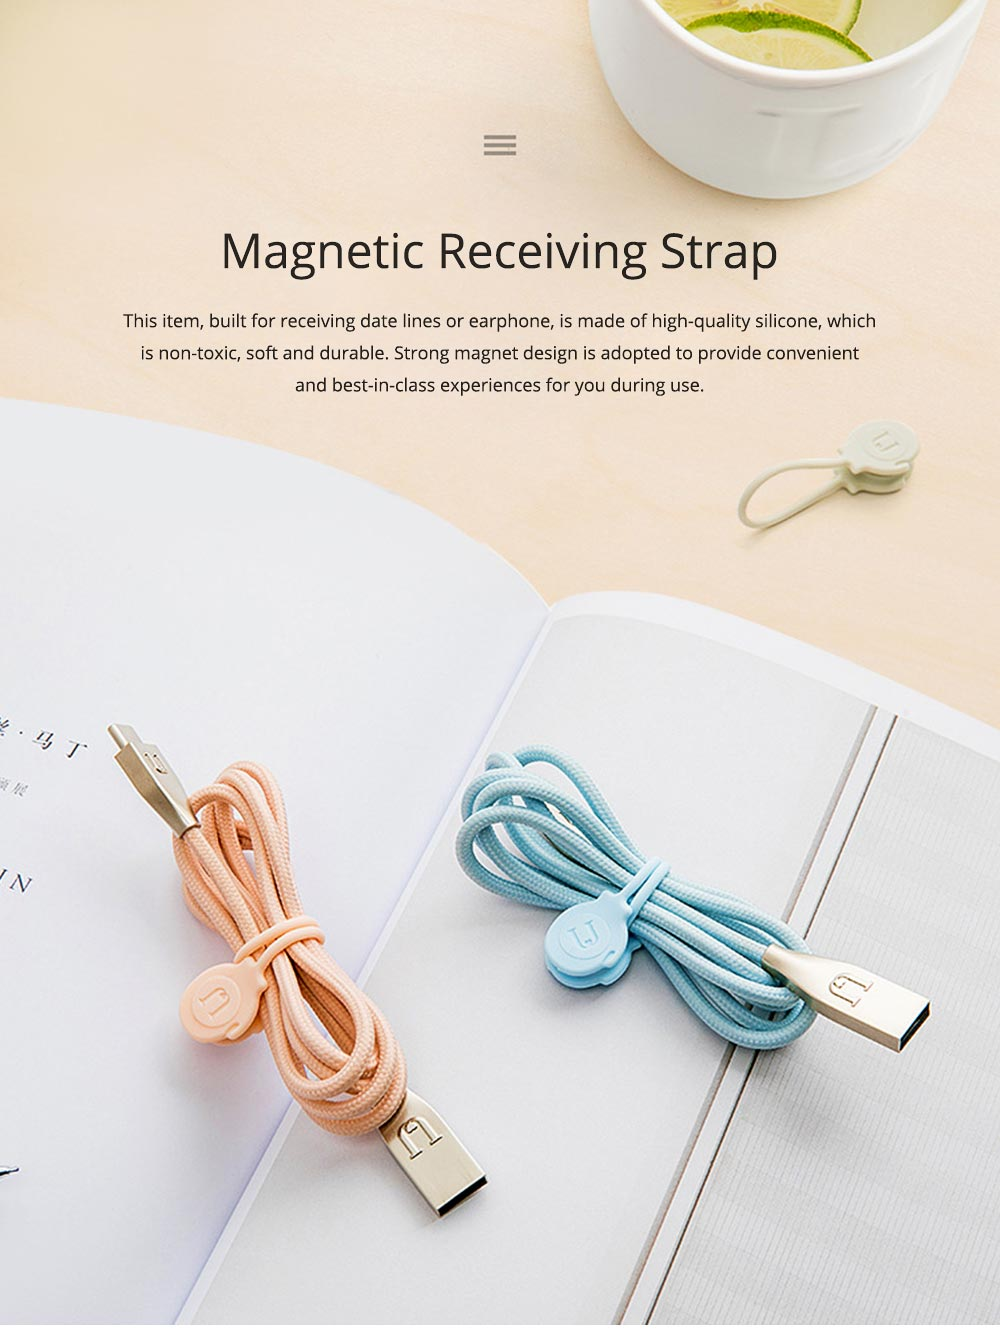 Minimalist 3PCS Magnetic Date Line Wire Organizer Strap, Soft Silicone Charging Line Earphone Wire Receiving Buckle Belt 0